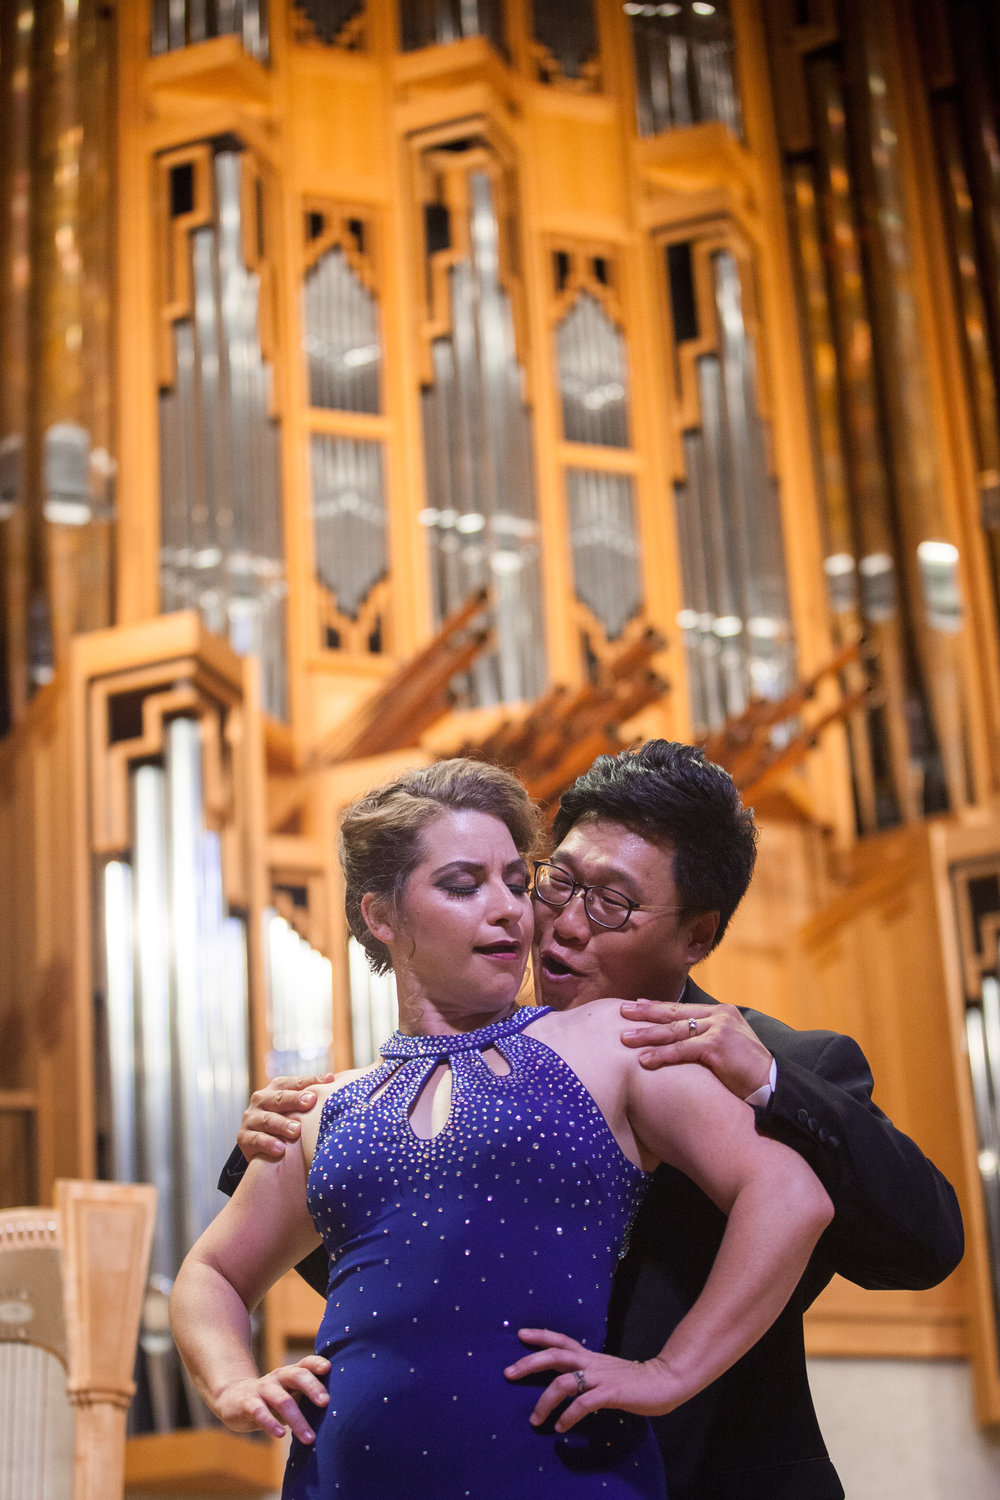 Soonchan Kwon, tenor, and Ellie Jarrett-Shattles, mezzo-soprano, singing a duet.